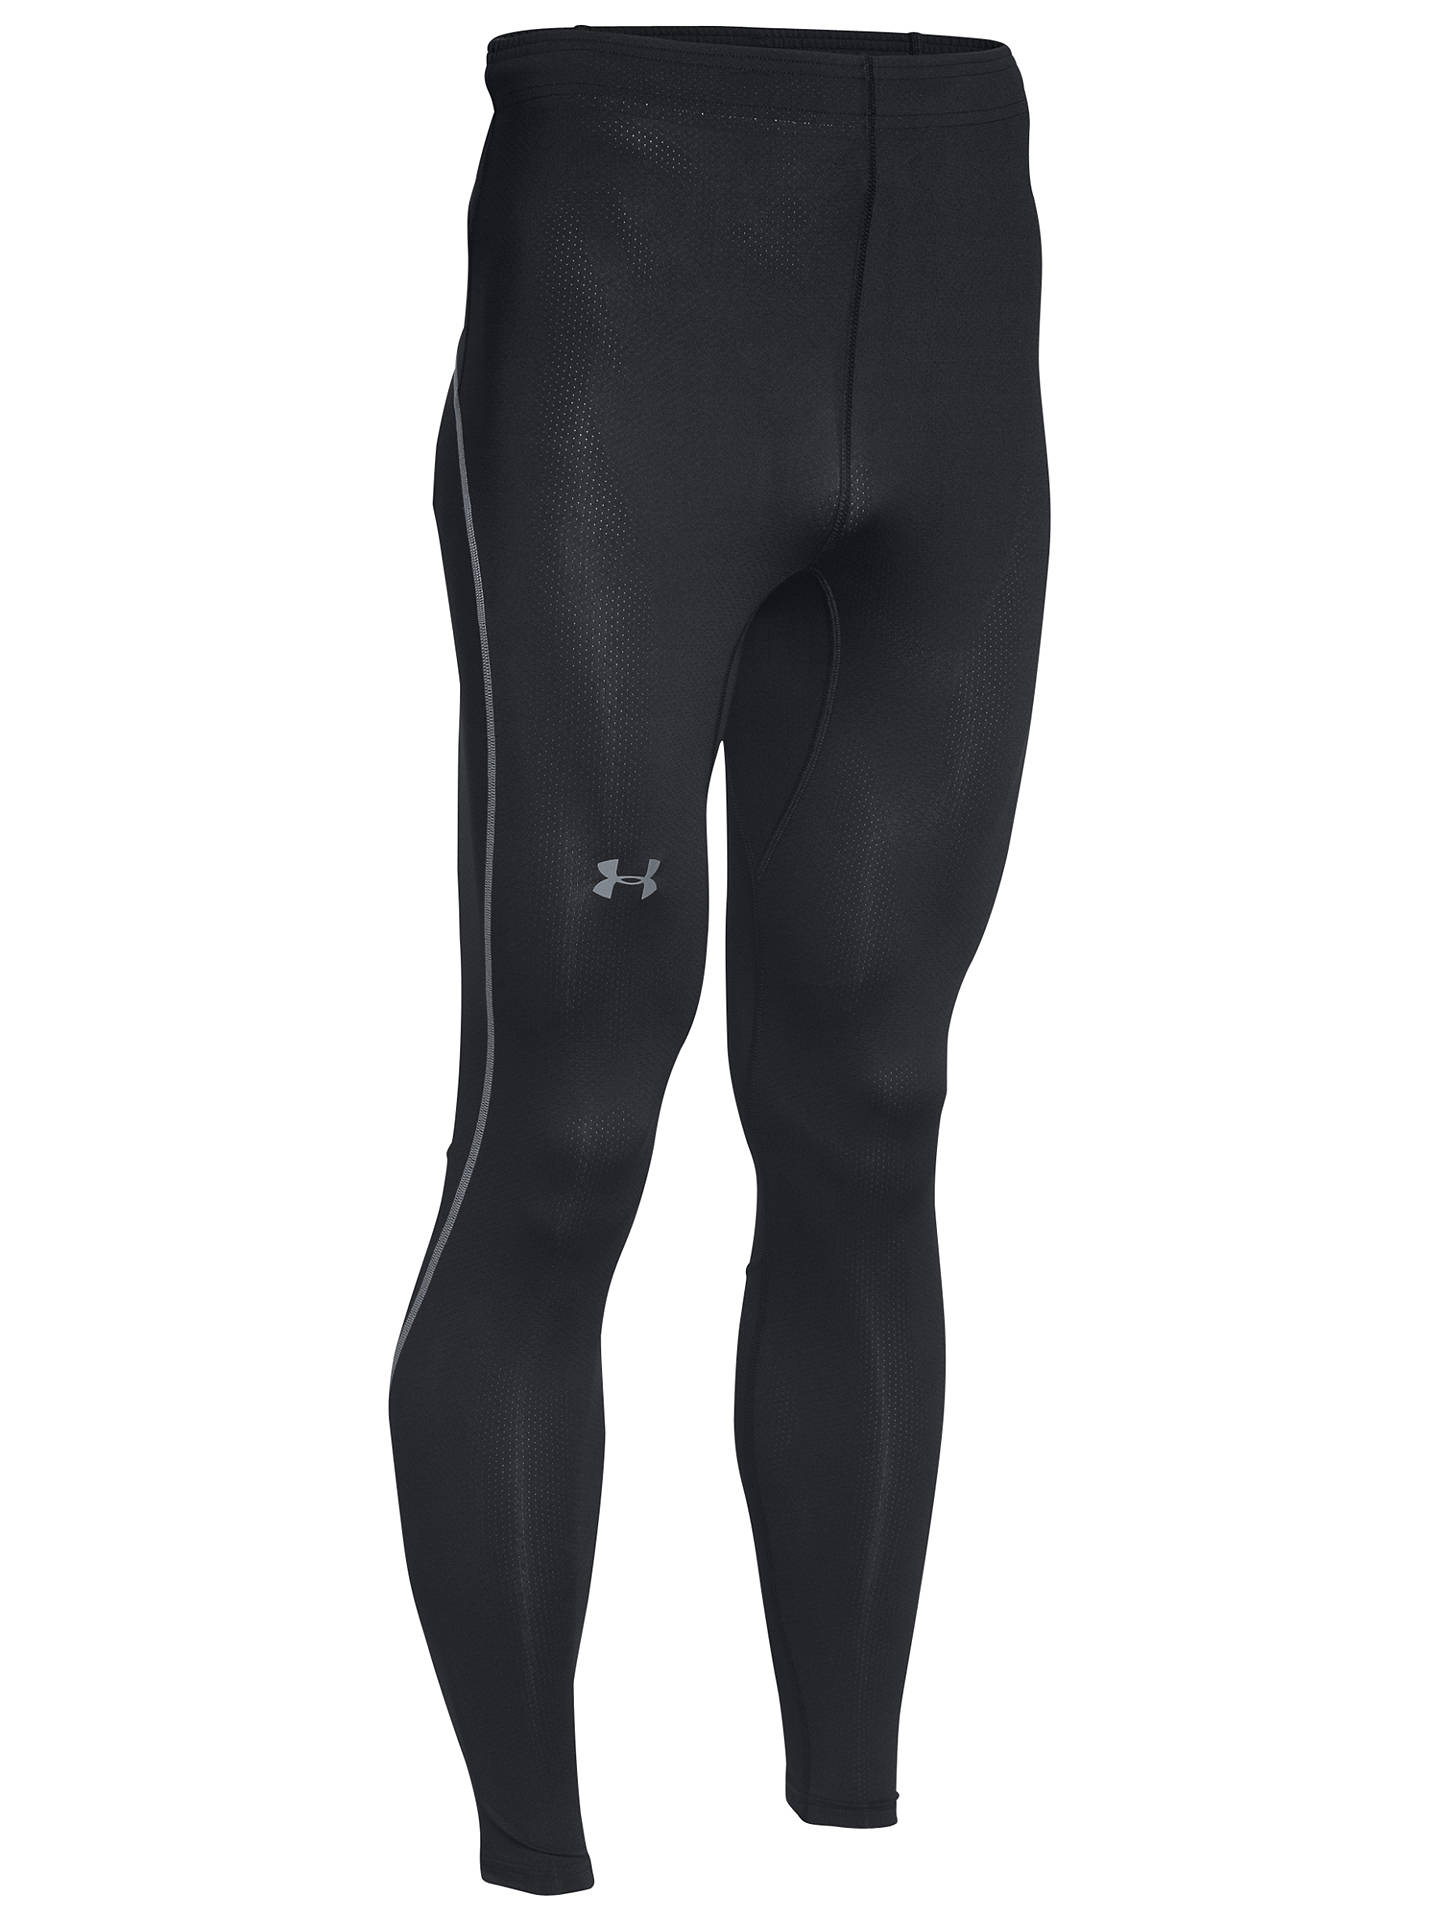 6b6268eadee24 Buy Under Armour CoolSwitch Compression Running Tights, Black, S Online at  johnlewis.com ...